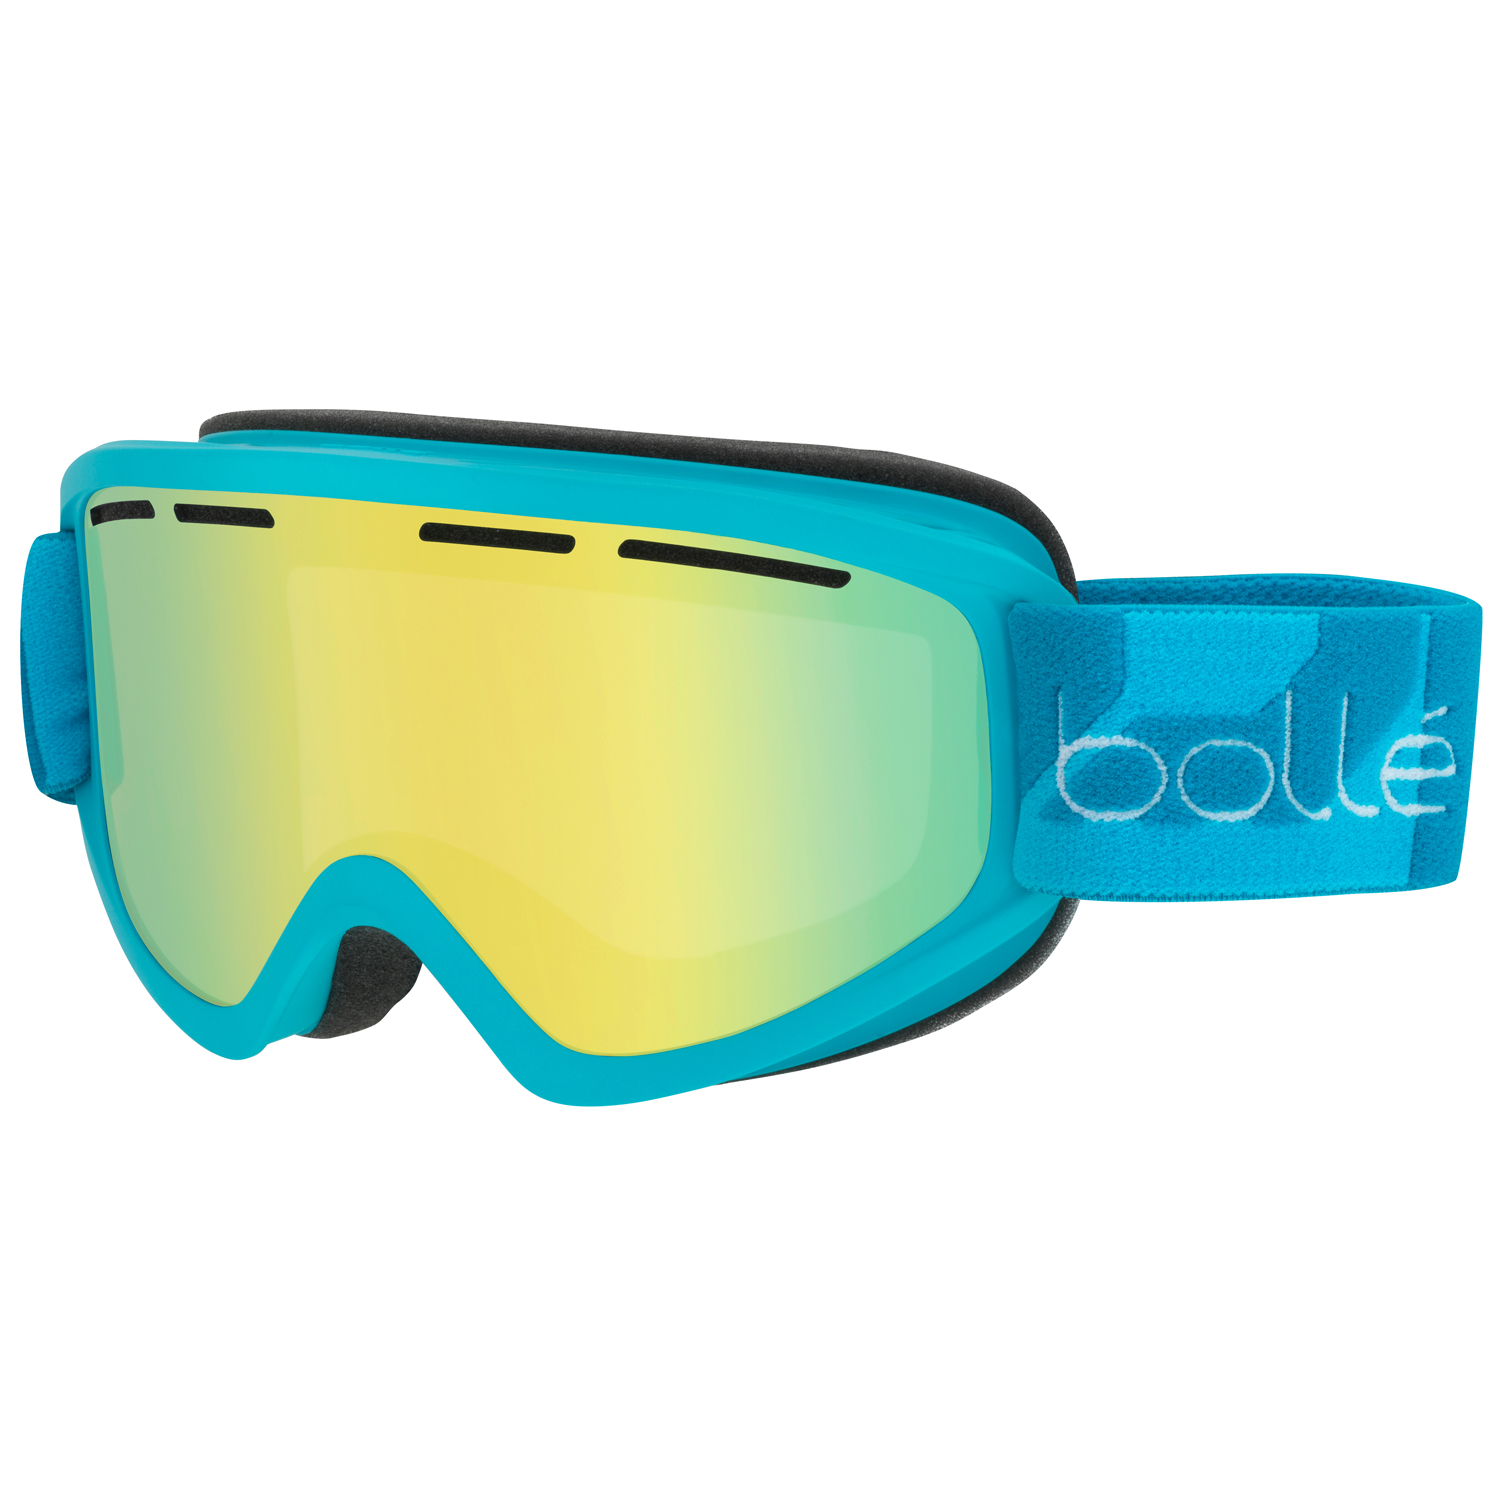 Bolle Goggle 21804 Schuss Blue